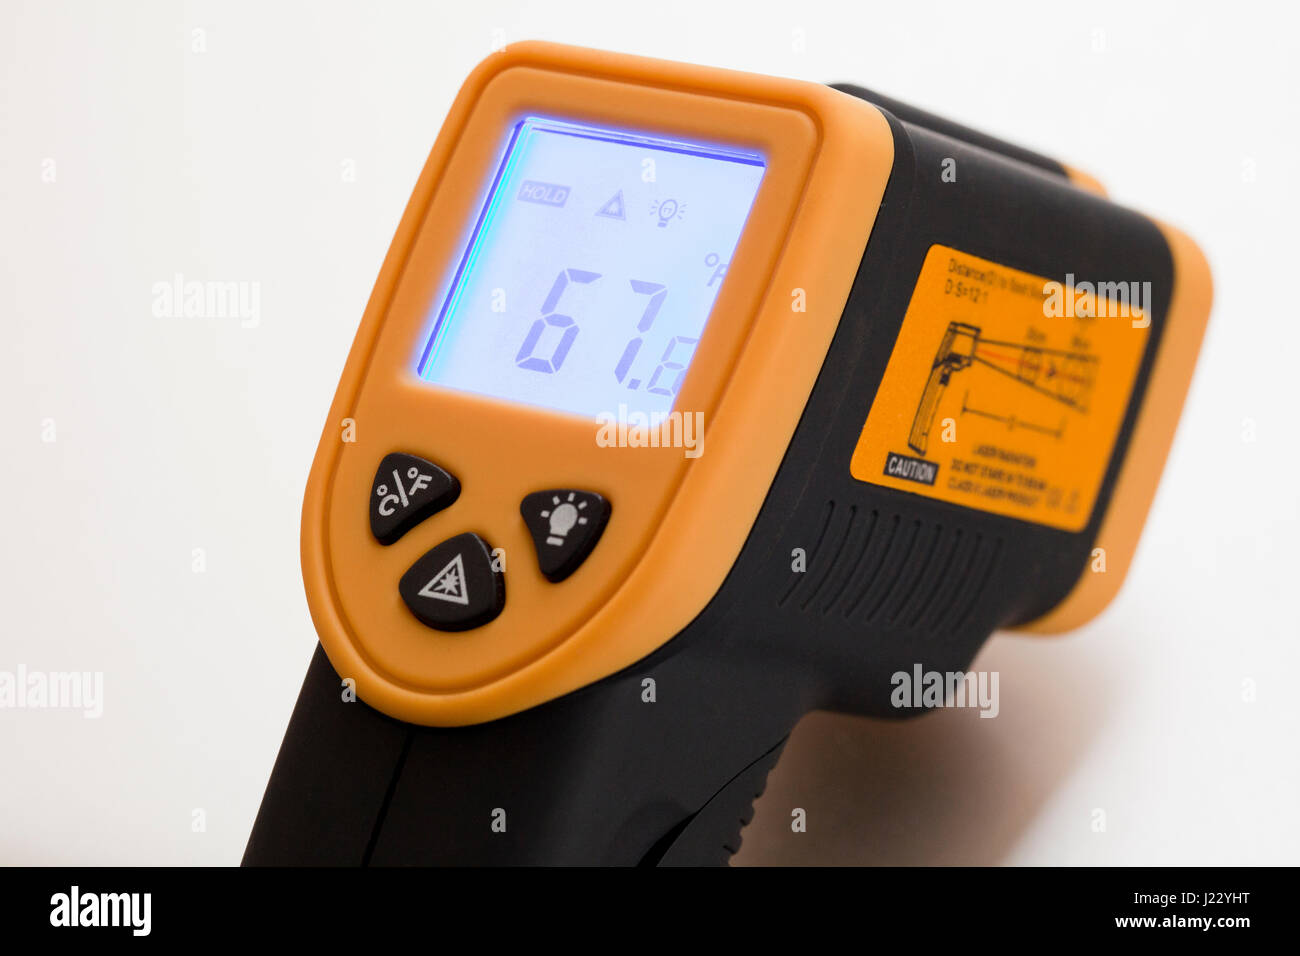 Digital infrared thermometer - USA - Stock Image